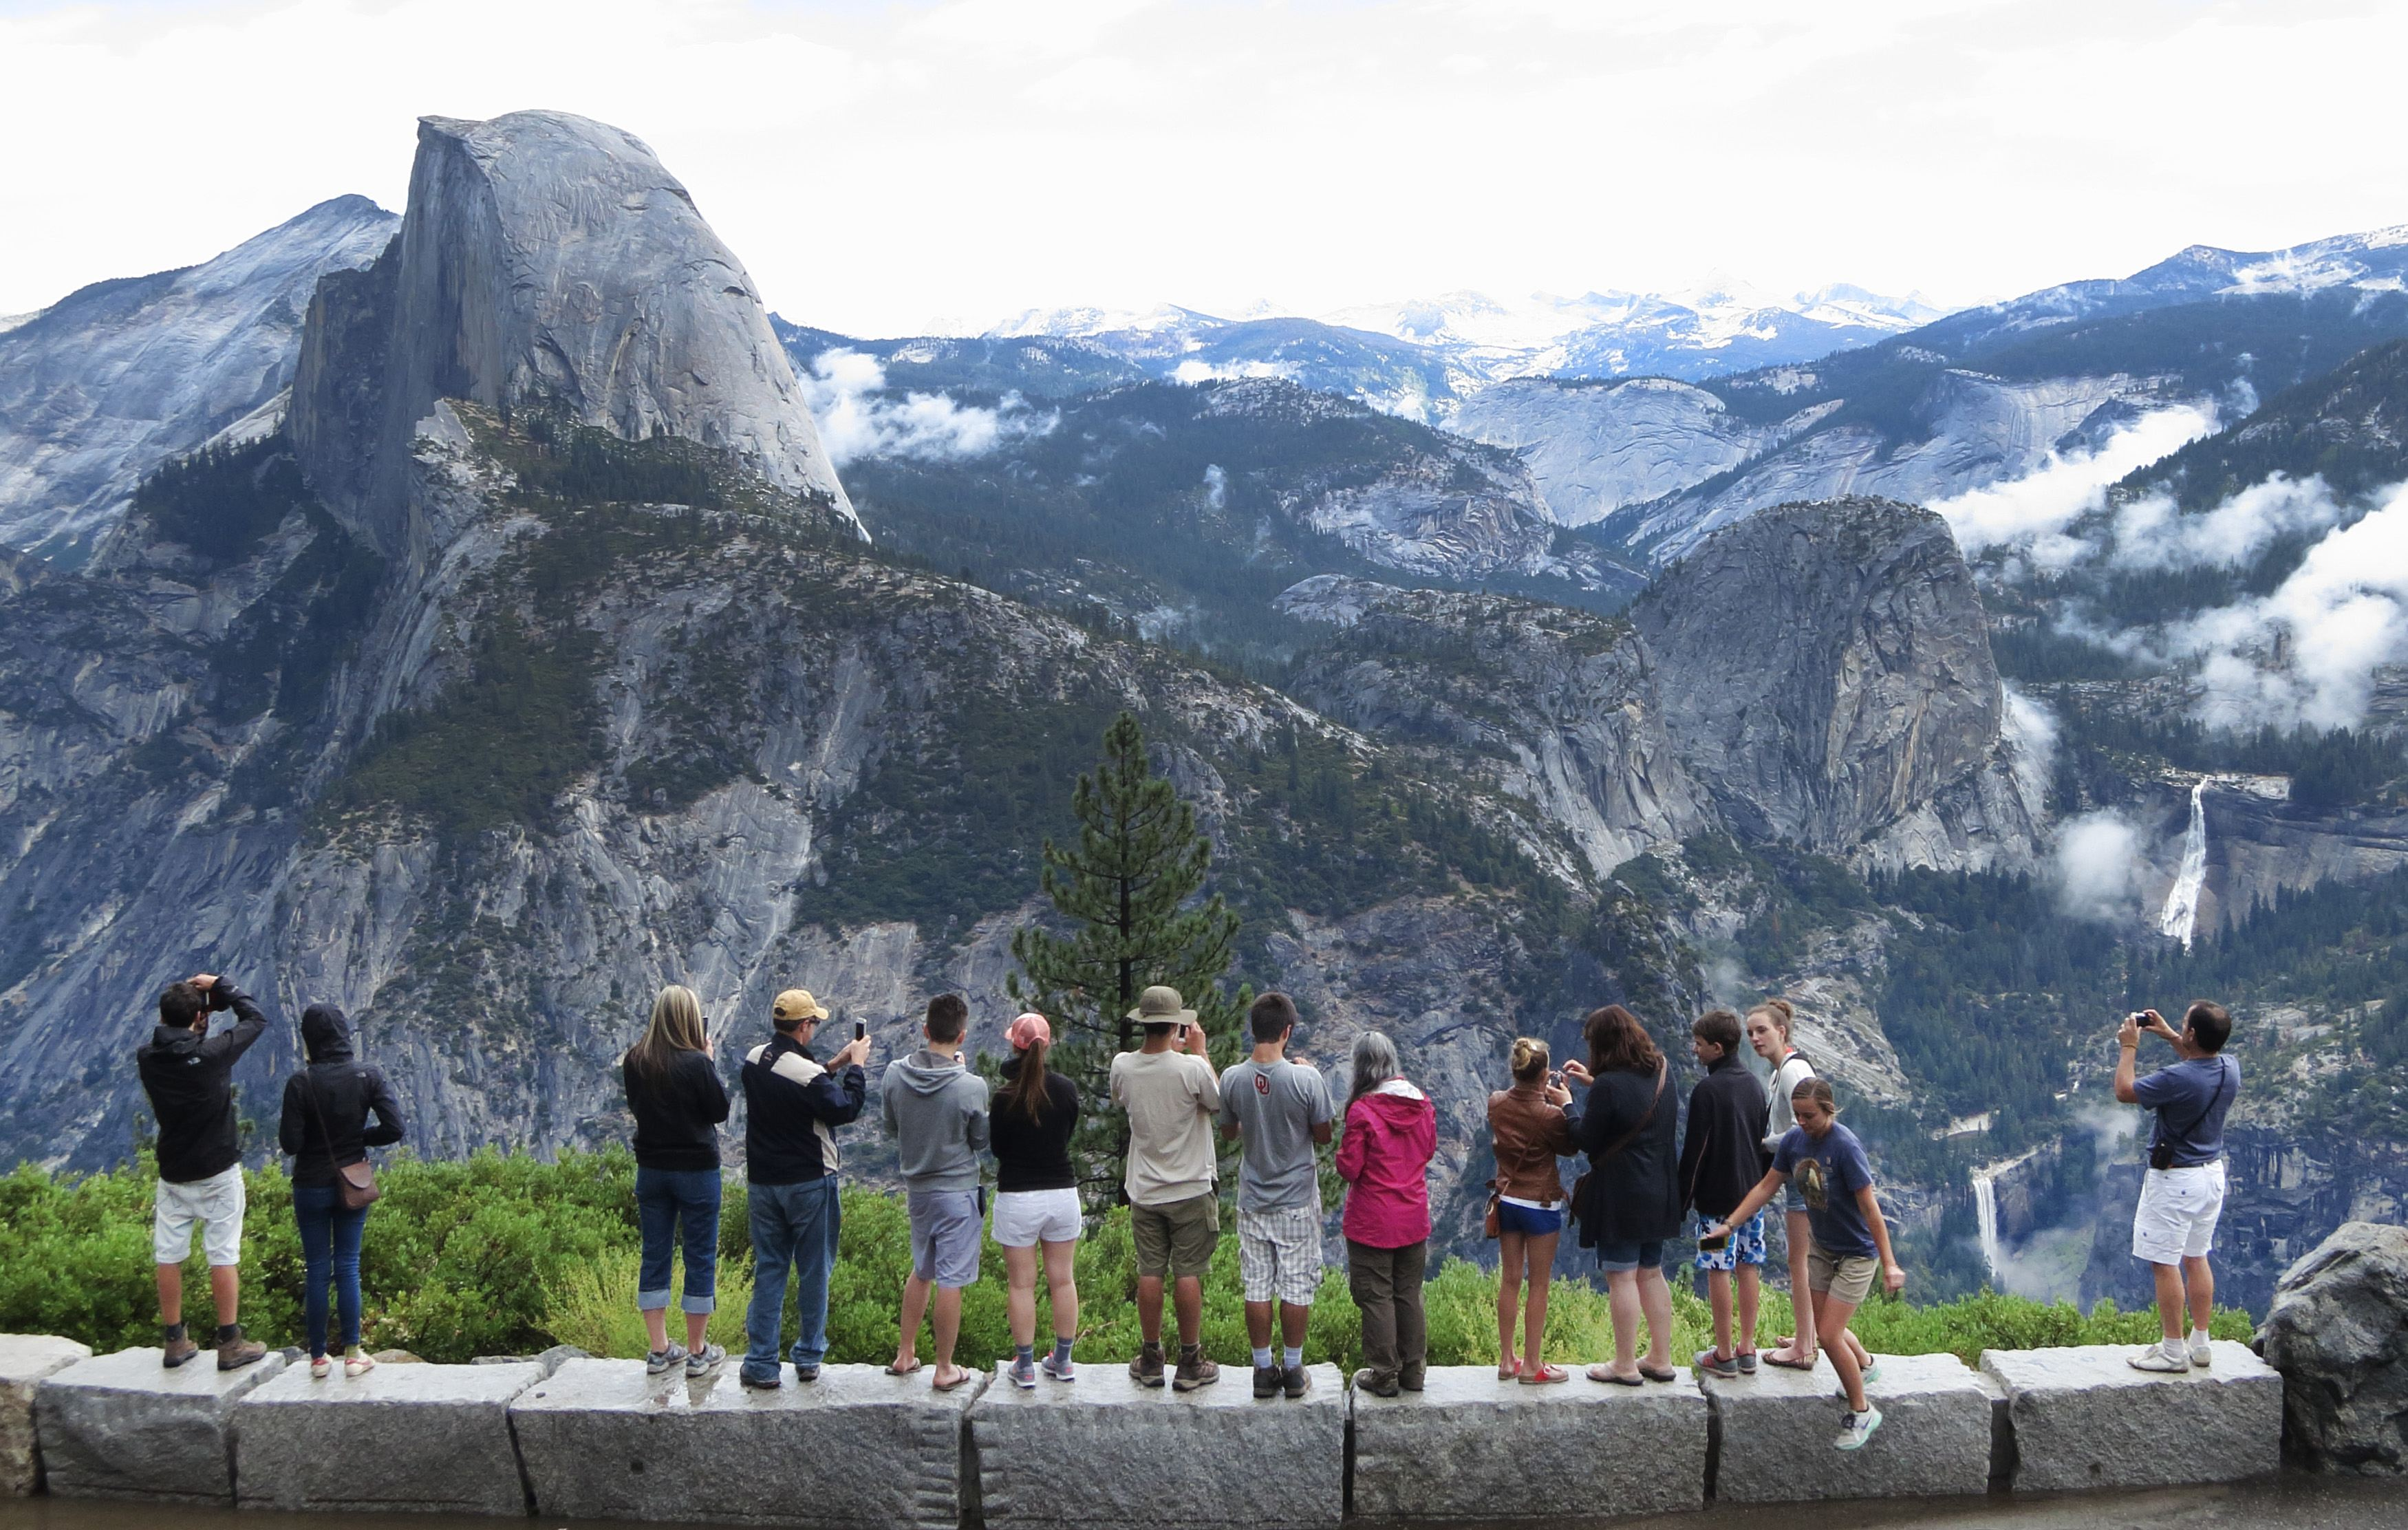 yosemite national park senior dating site Don't let time constraints keep you from making the trip to yosemite national park from san francisco a 1-day trip lets you visit the park's major attractions such as half dome, tuolumne.